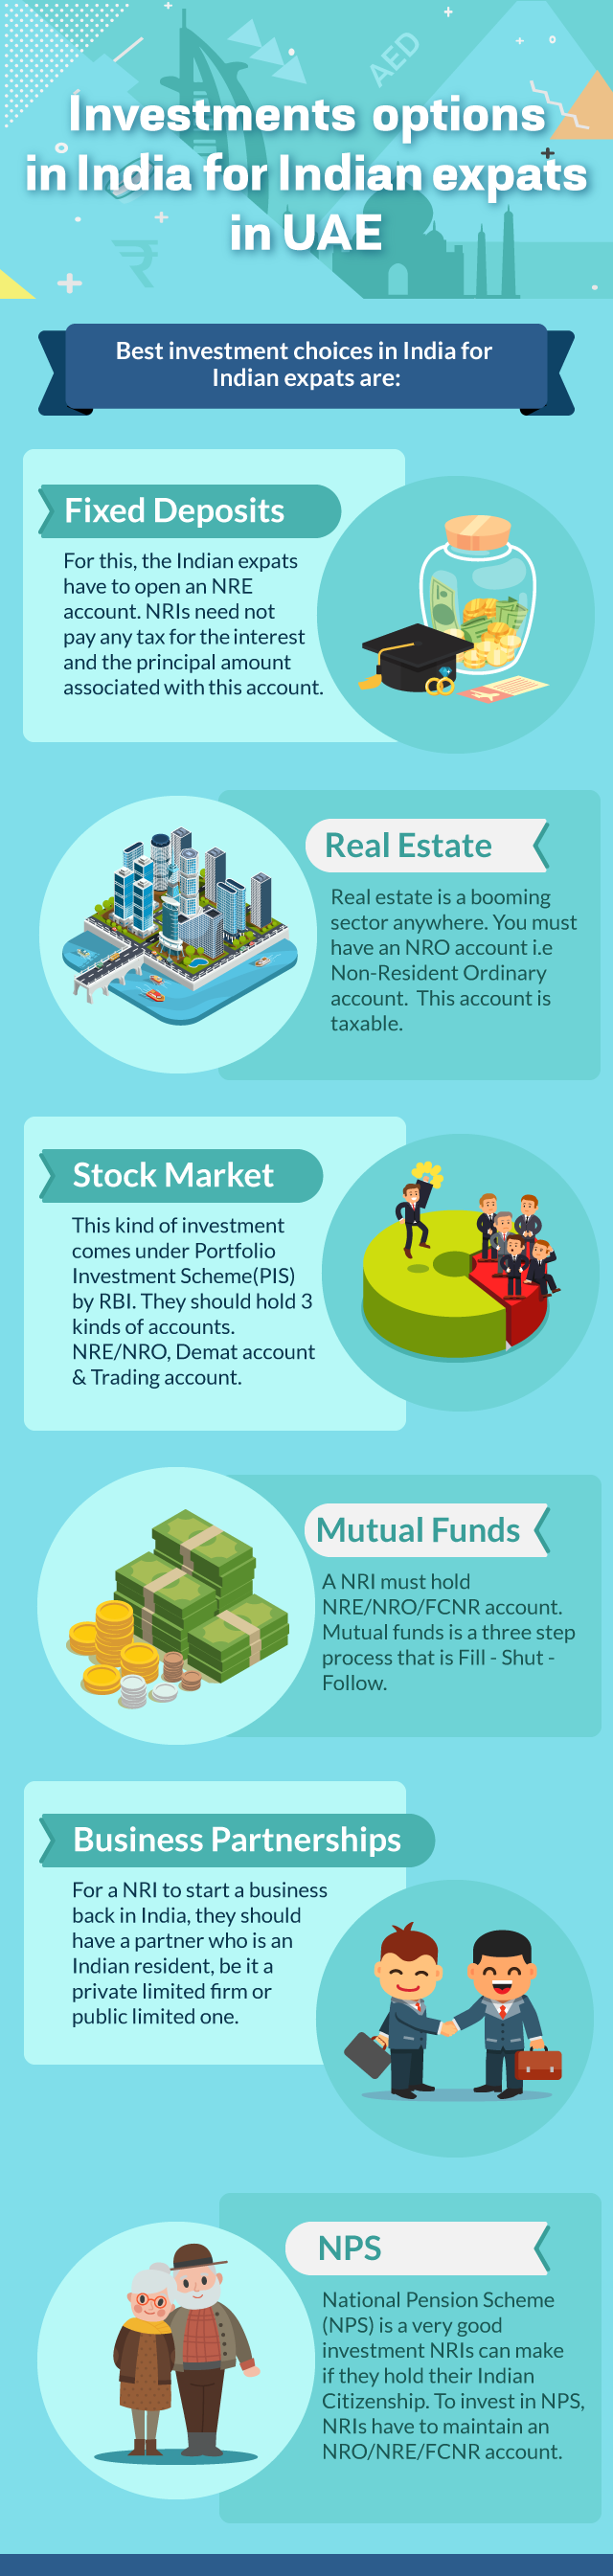 Best investment options for nri